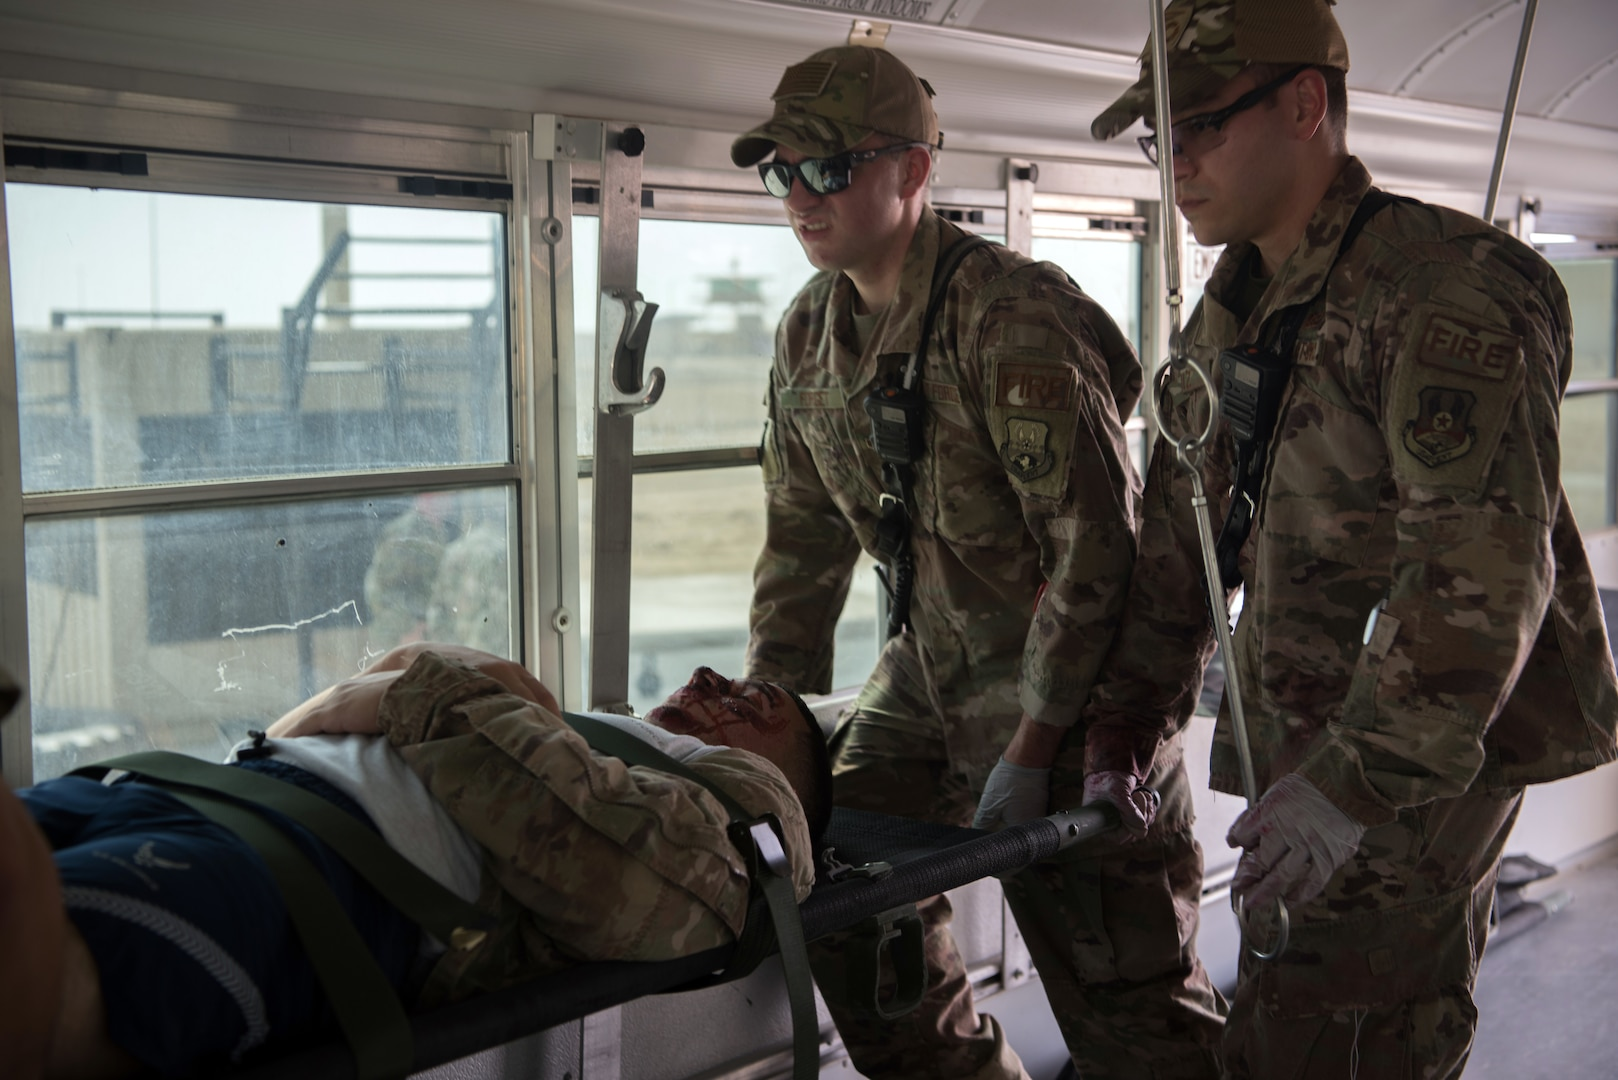 Firefighters assigned to the 380th Expeditionary Civil Engineer Squadron load a simulated casualty onto a medical transportation bus during a first responder exercise Sept. 24, 2019, on Al Dhafra Air Base, United Arab Emirates. The exercise showcased the readiness, knowledge of emergency procedures and interagency cooperation amongst the wing's first responders. (U.S. Air Force photo by Tech. Sgt. Jocelyn A. Ford)